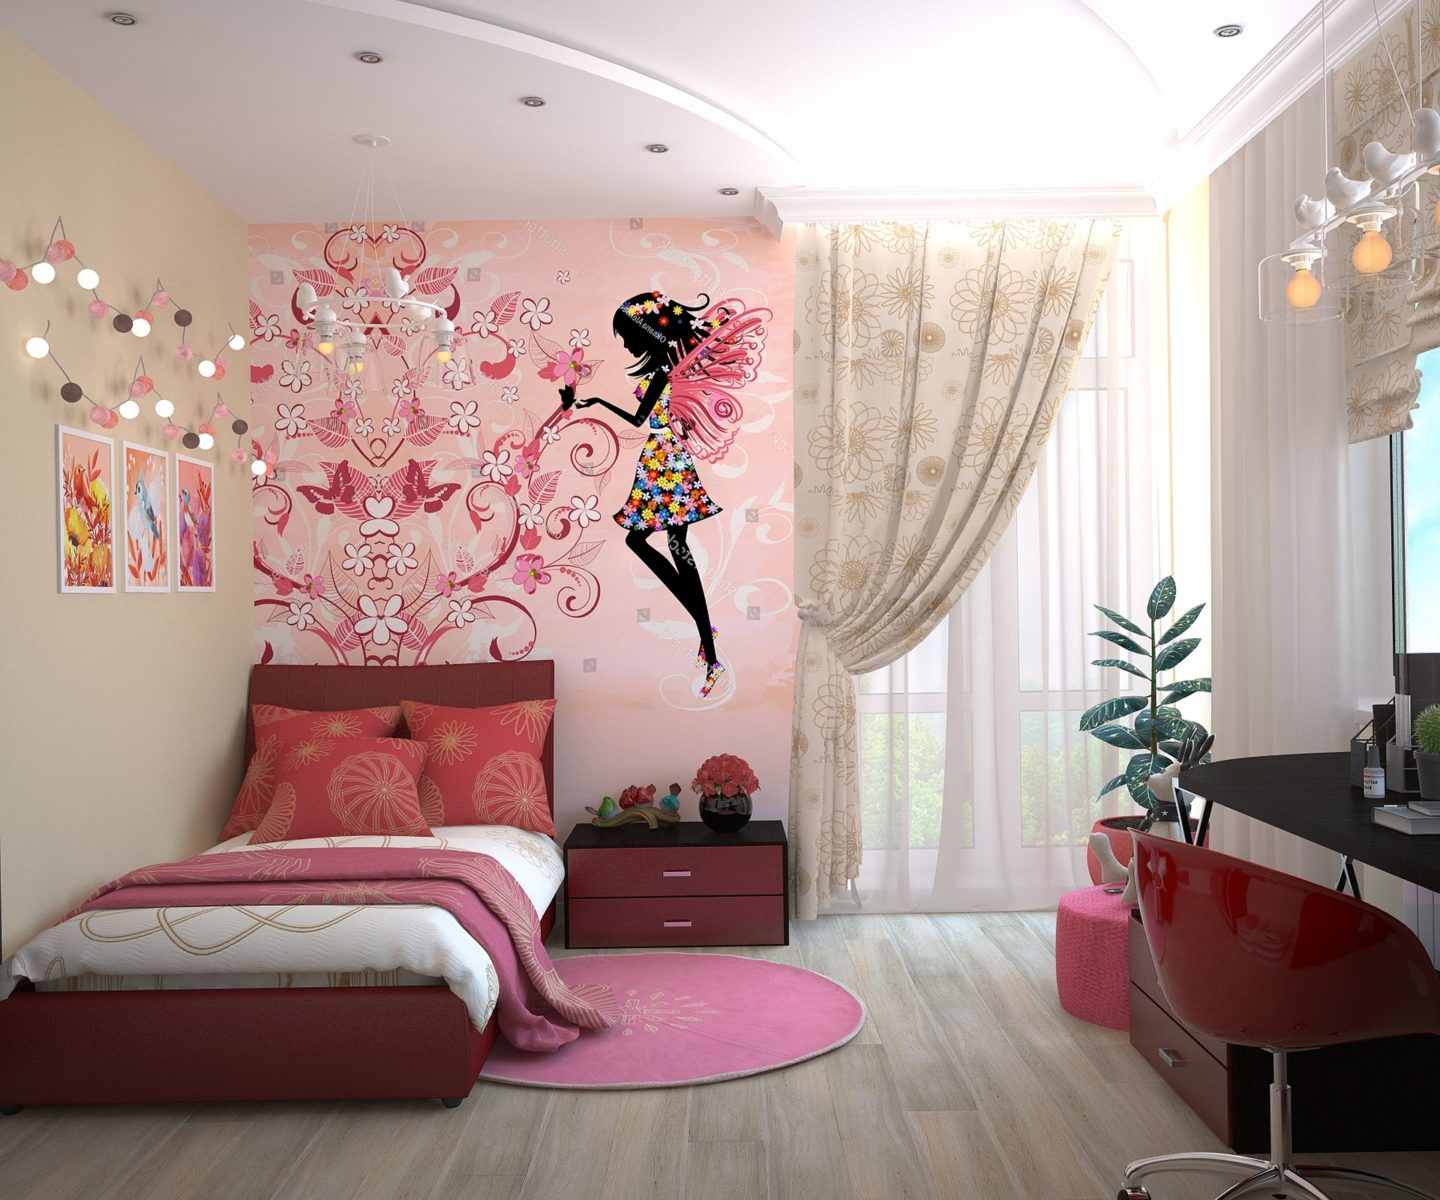 Space Saving Tips For A Small Kids Bedroom • Pass the Prosecco Please